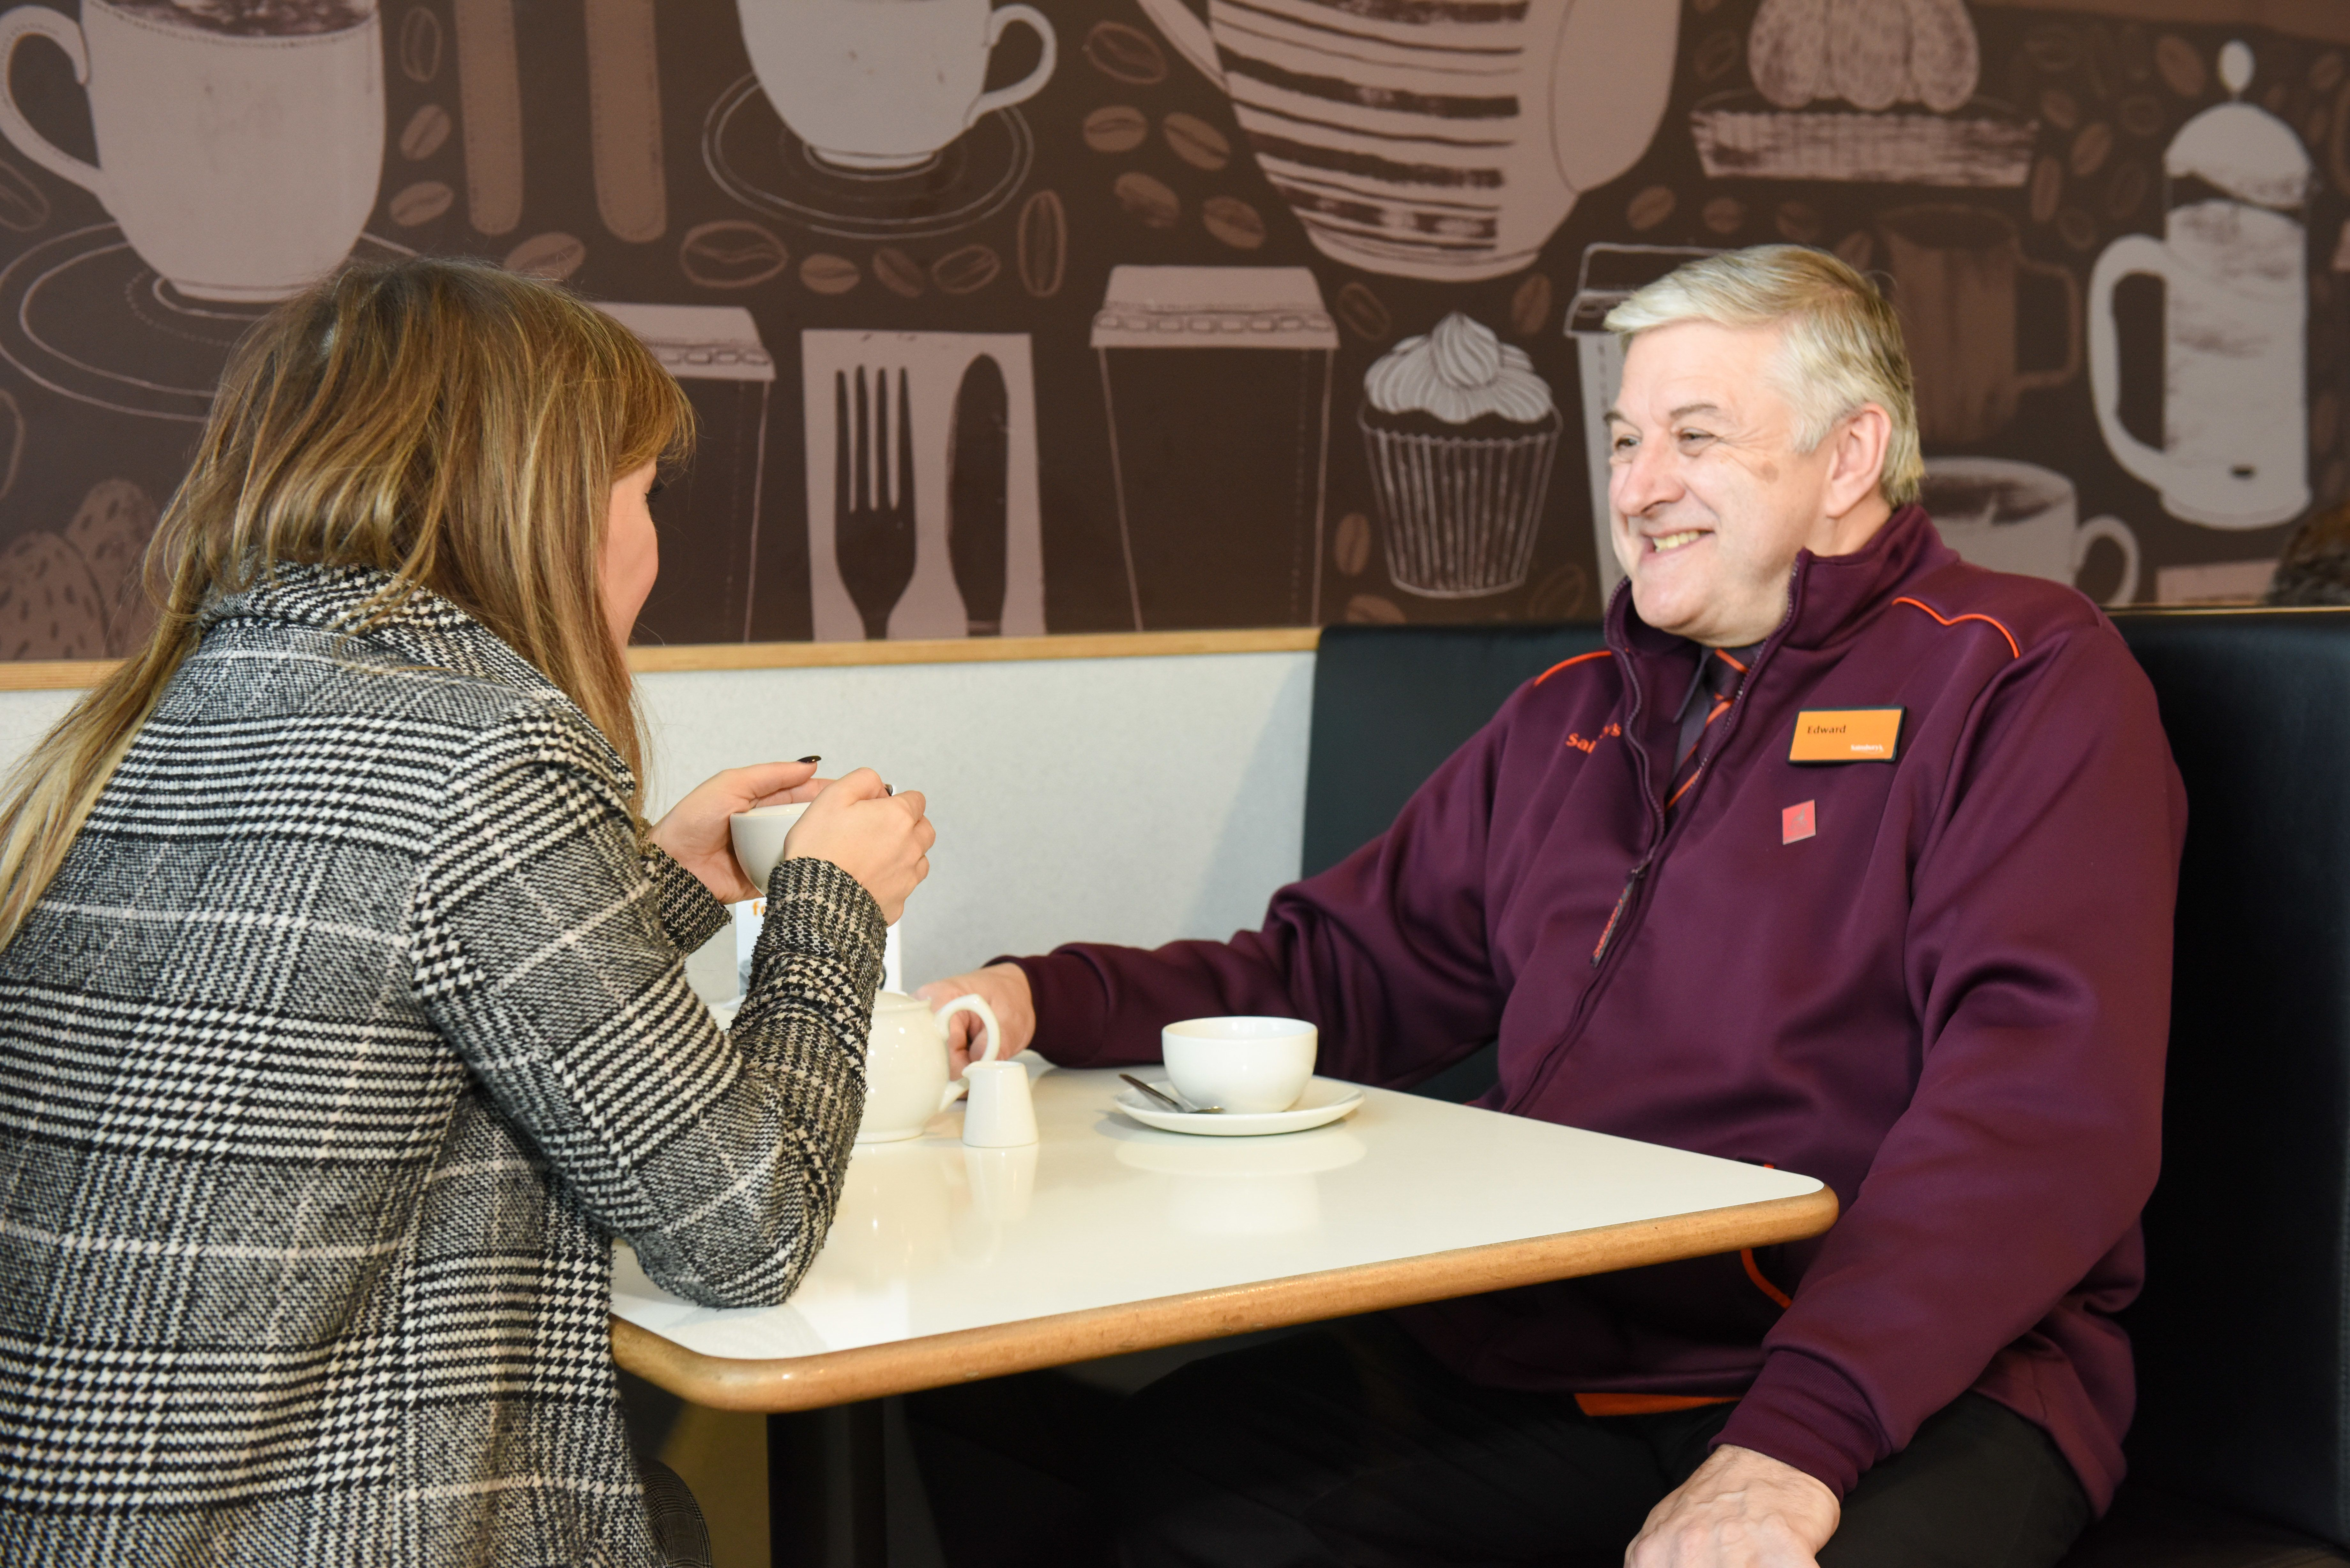 LONELINESS: From Co-Op To Costa: 4 Companies With Brilliant Ideas To Tackle The Loneliness